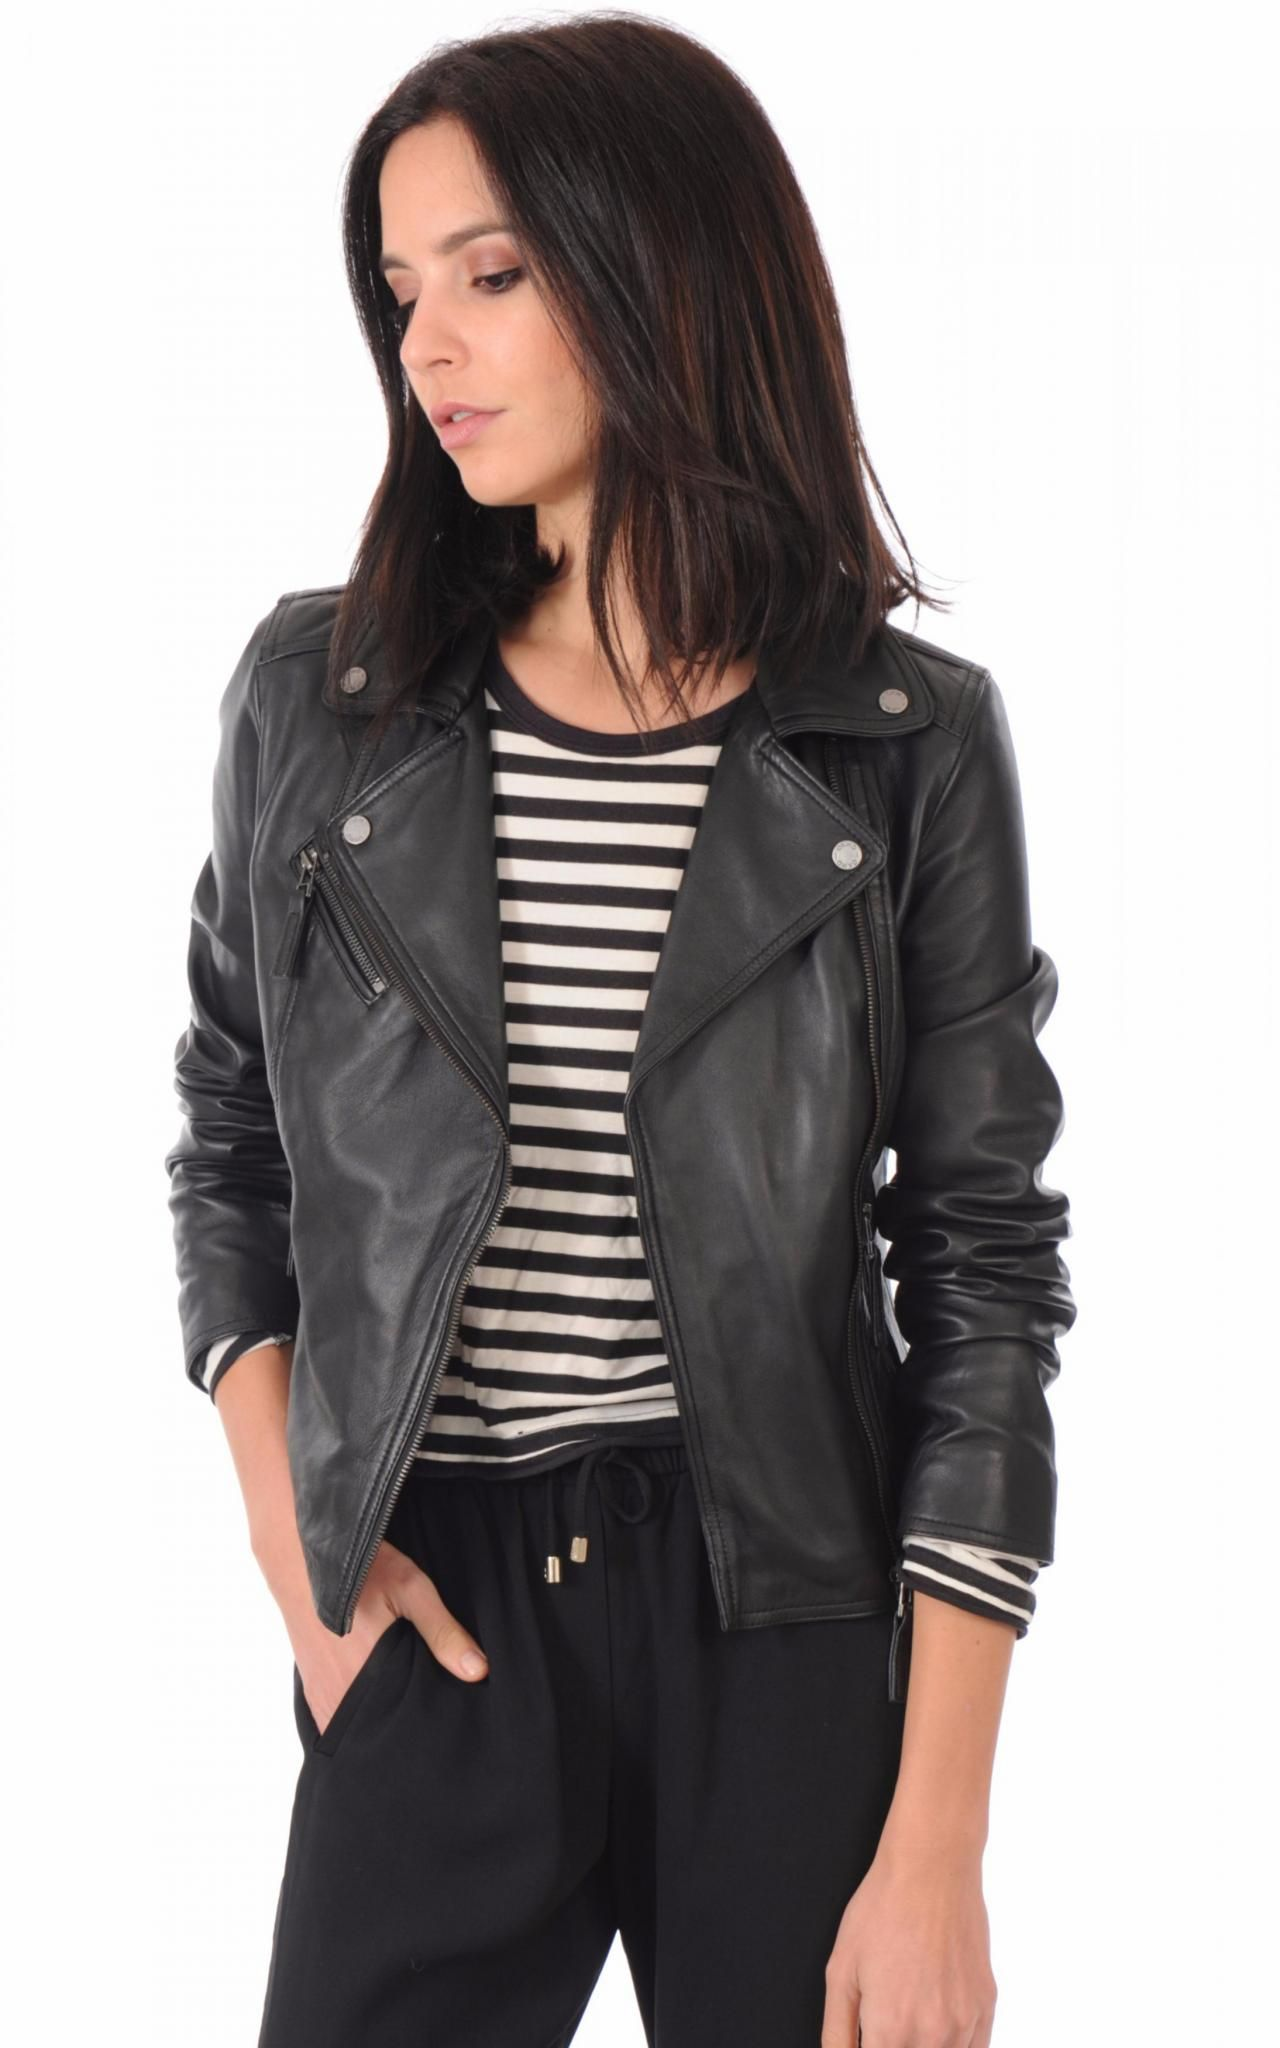 0d2f5d974 Women's Leather Jacket Handmade Motorcycle Solid Lambskin Leather ...